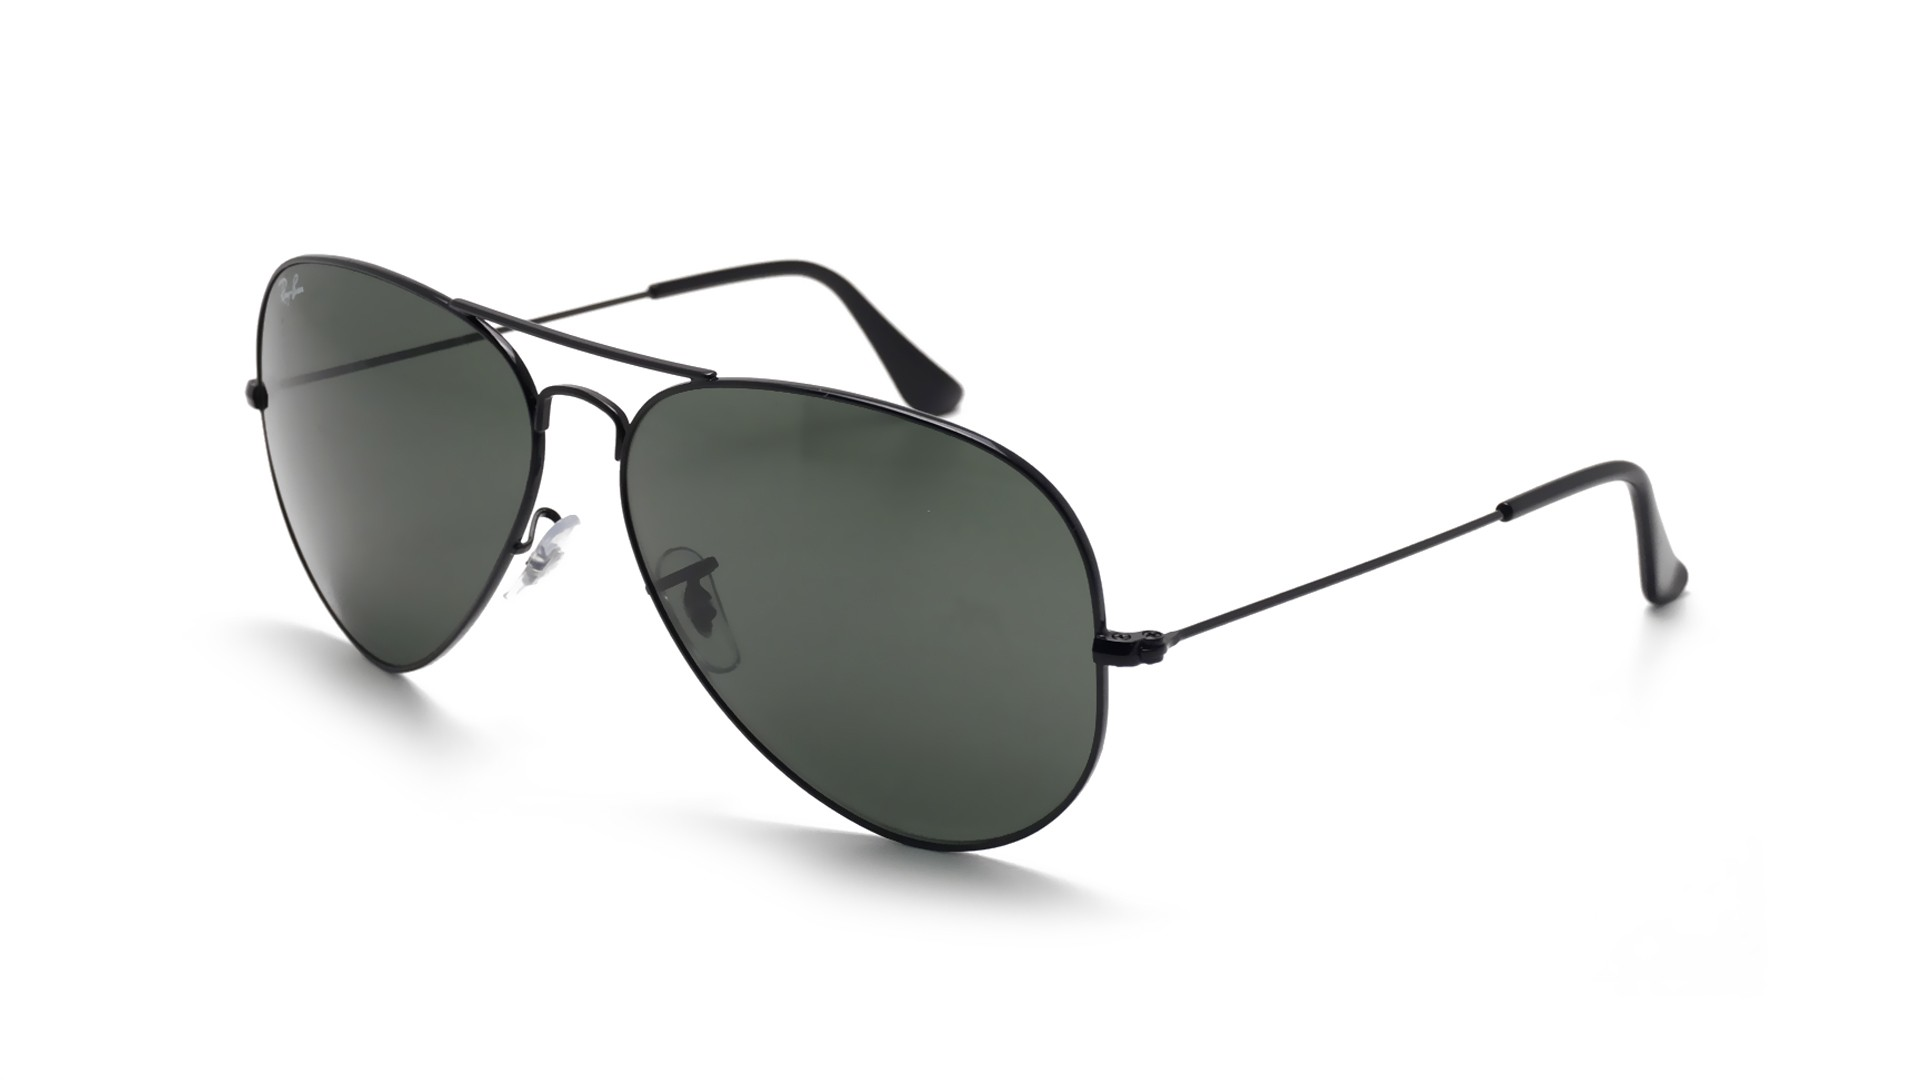 1b24f79148c90 Sunglasses Ray-Ban Aviator Large Metal II Black G-15 RB3026 L2821 62-14  Large